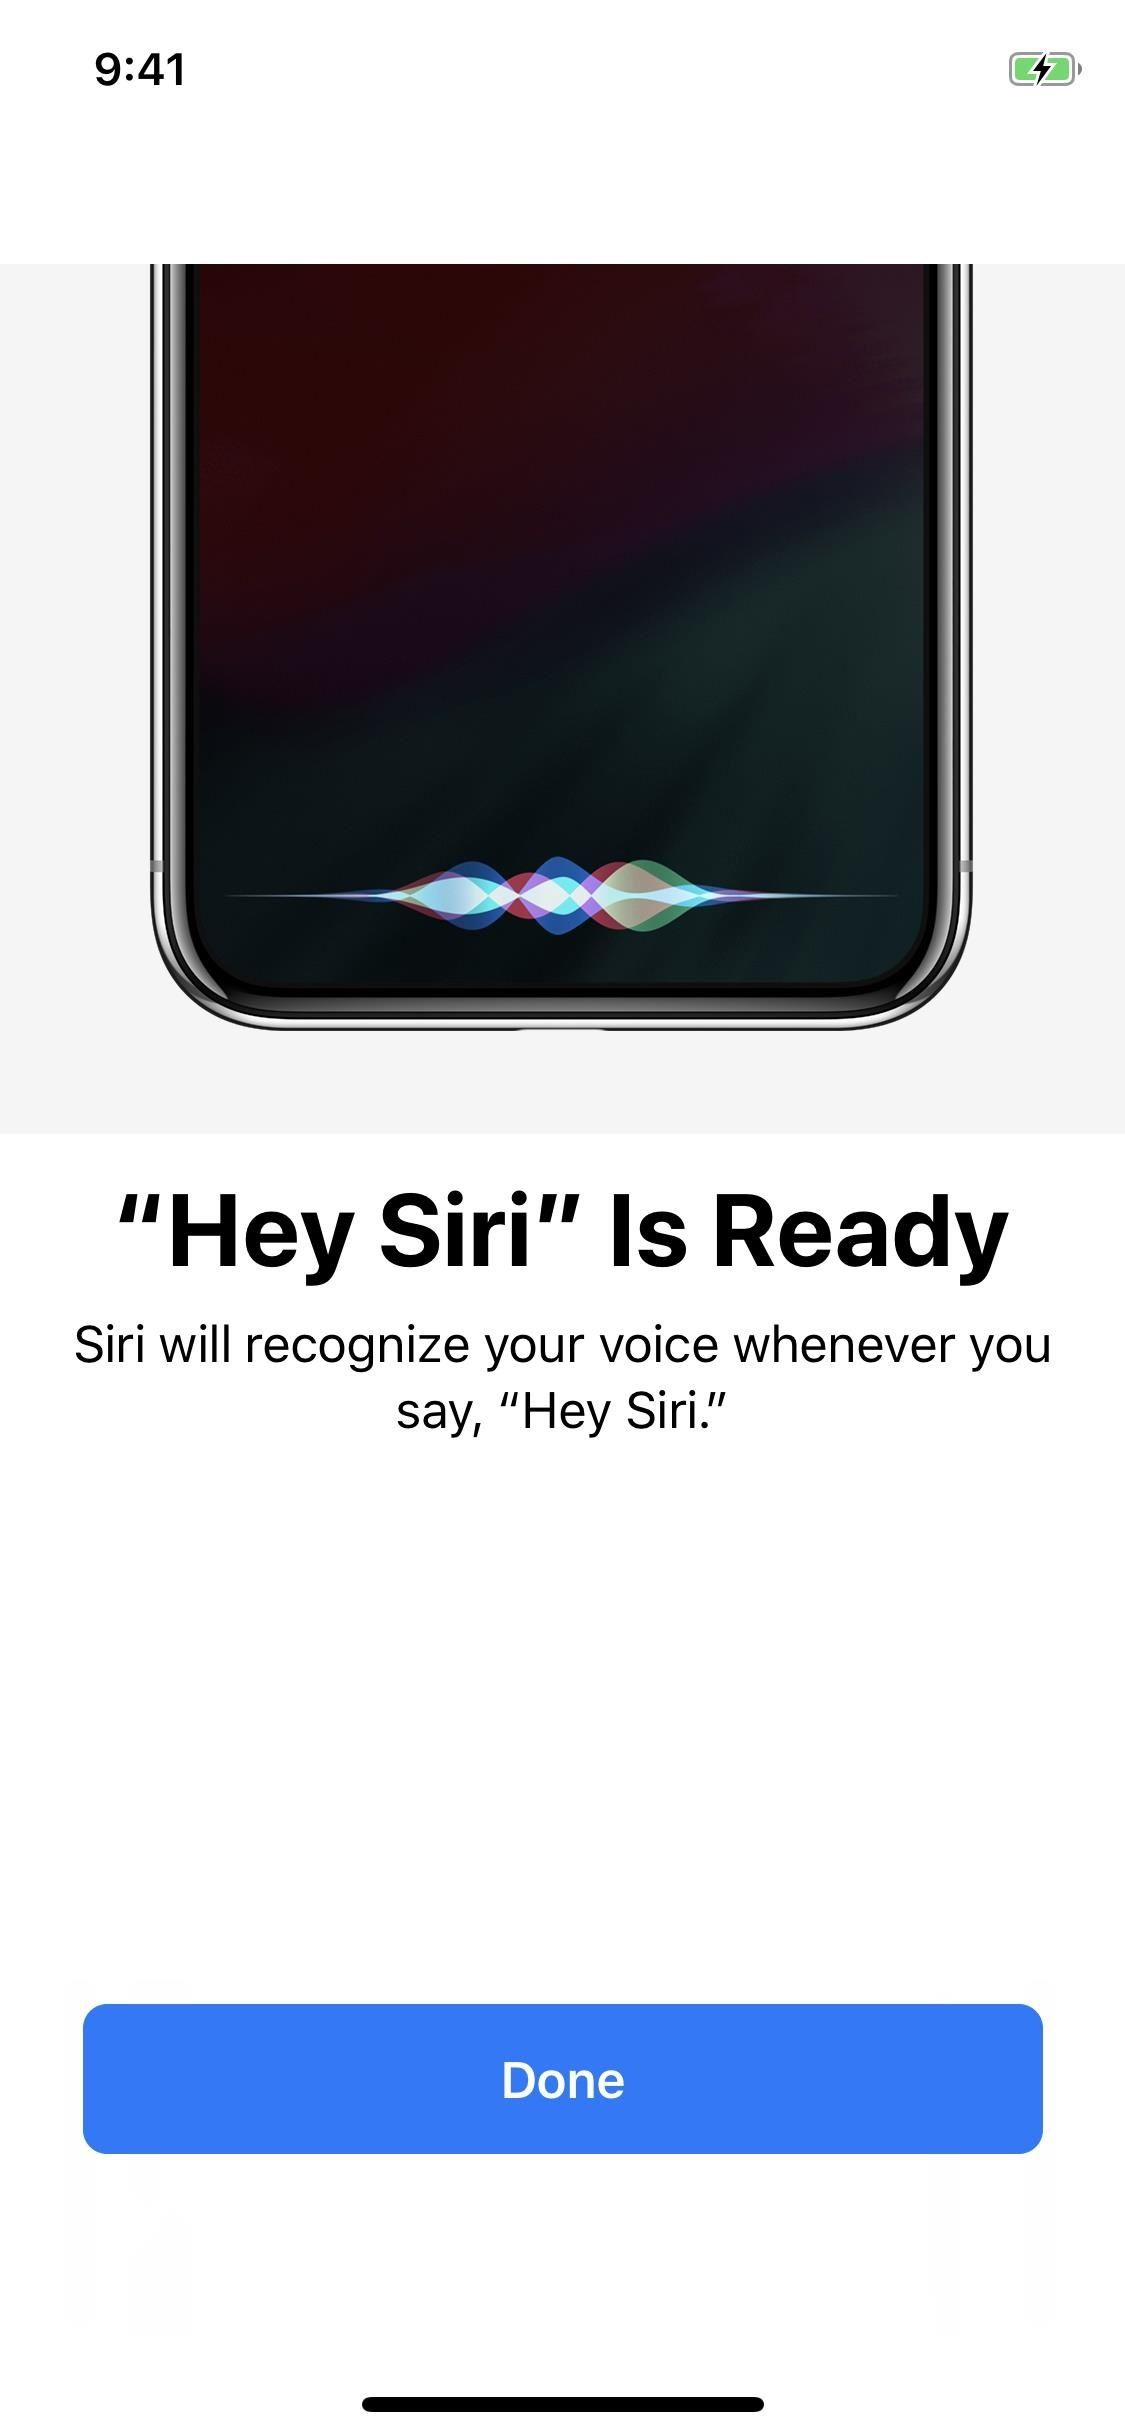 How to Use 'Hey Siri' Hands-Free on Your iPhone